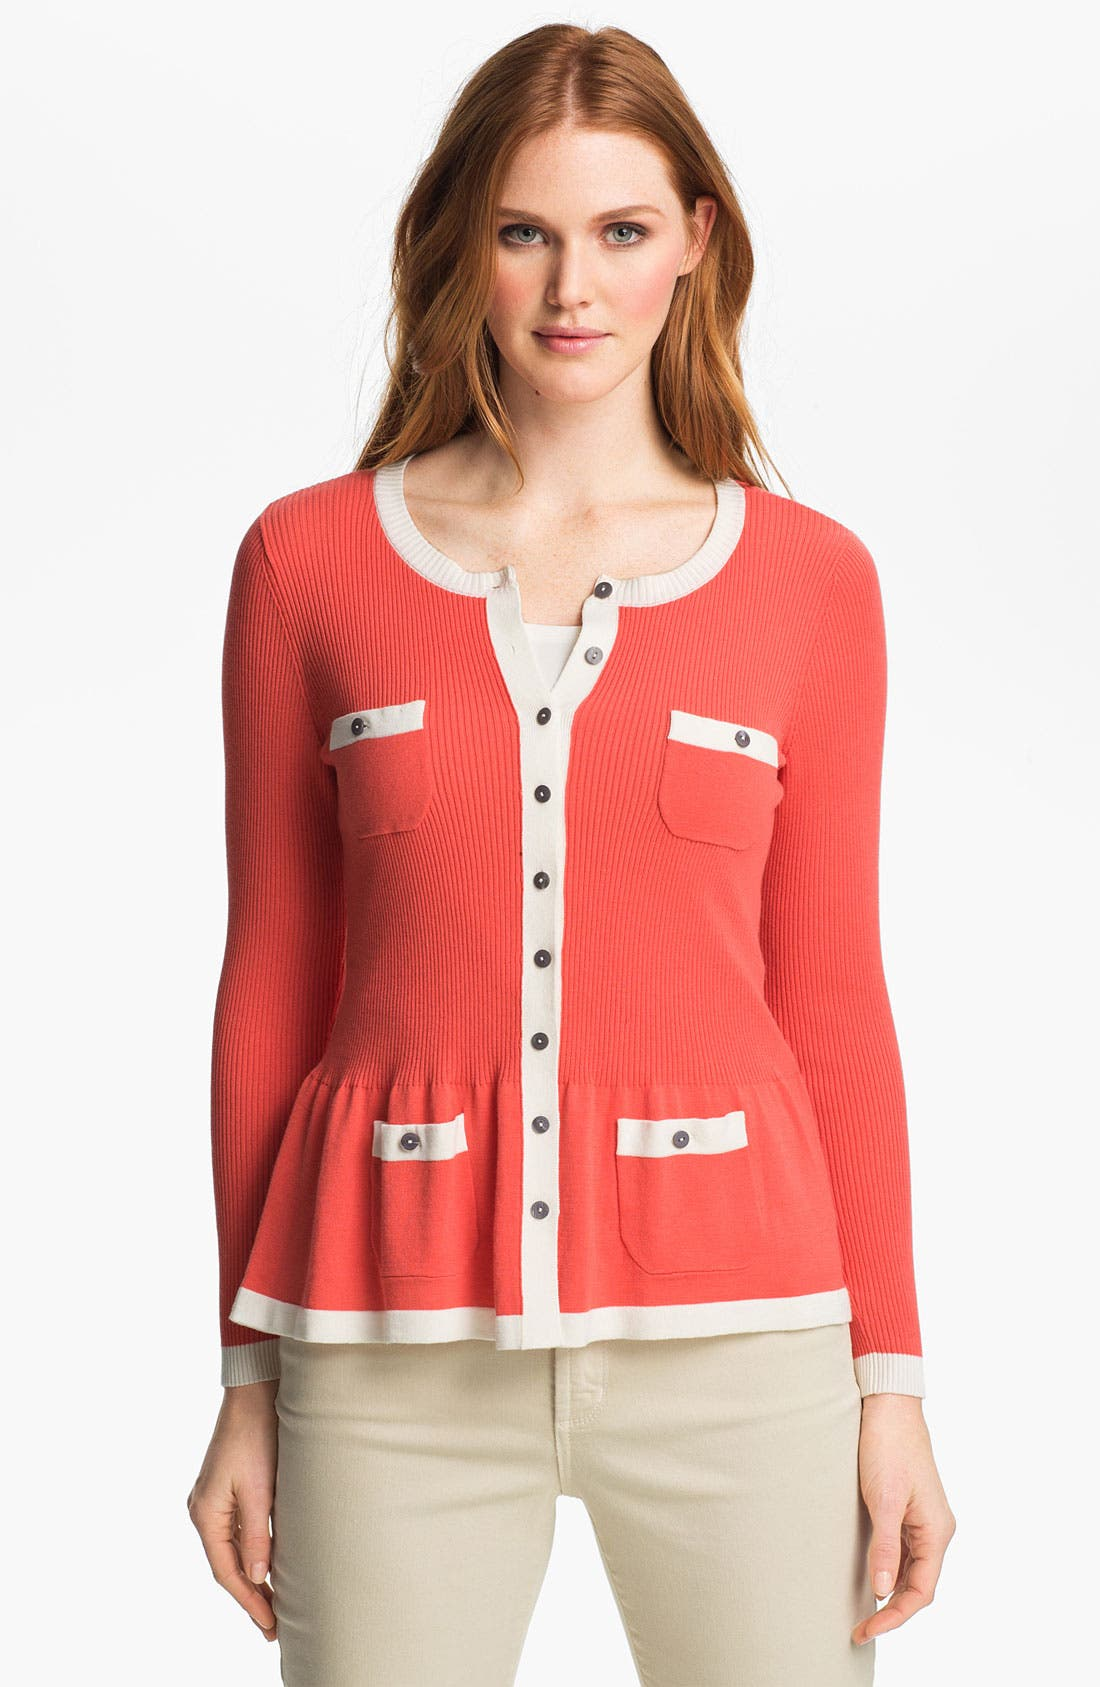 Alternate Image 1 Selected - Nic + Zoe Two Tone Peplum Sweater Jacket